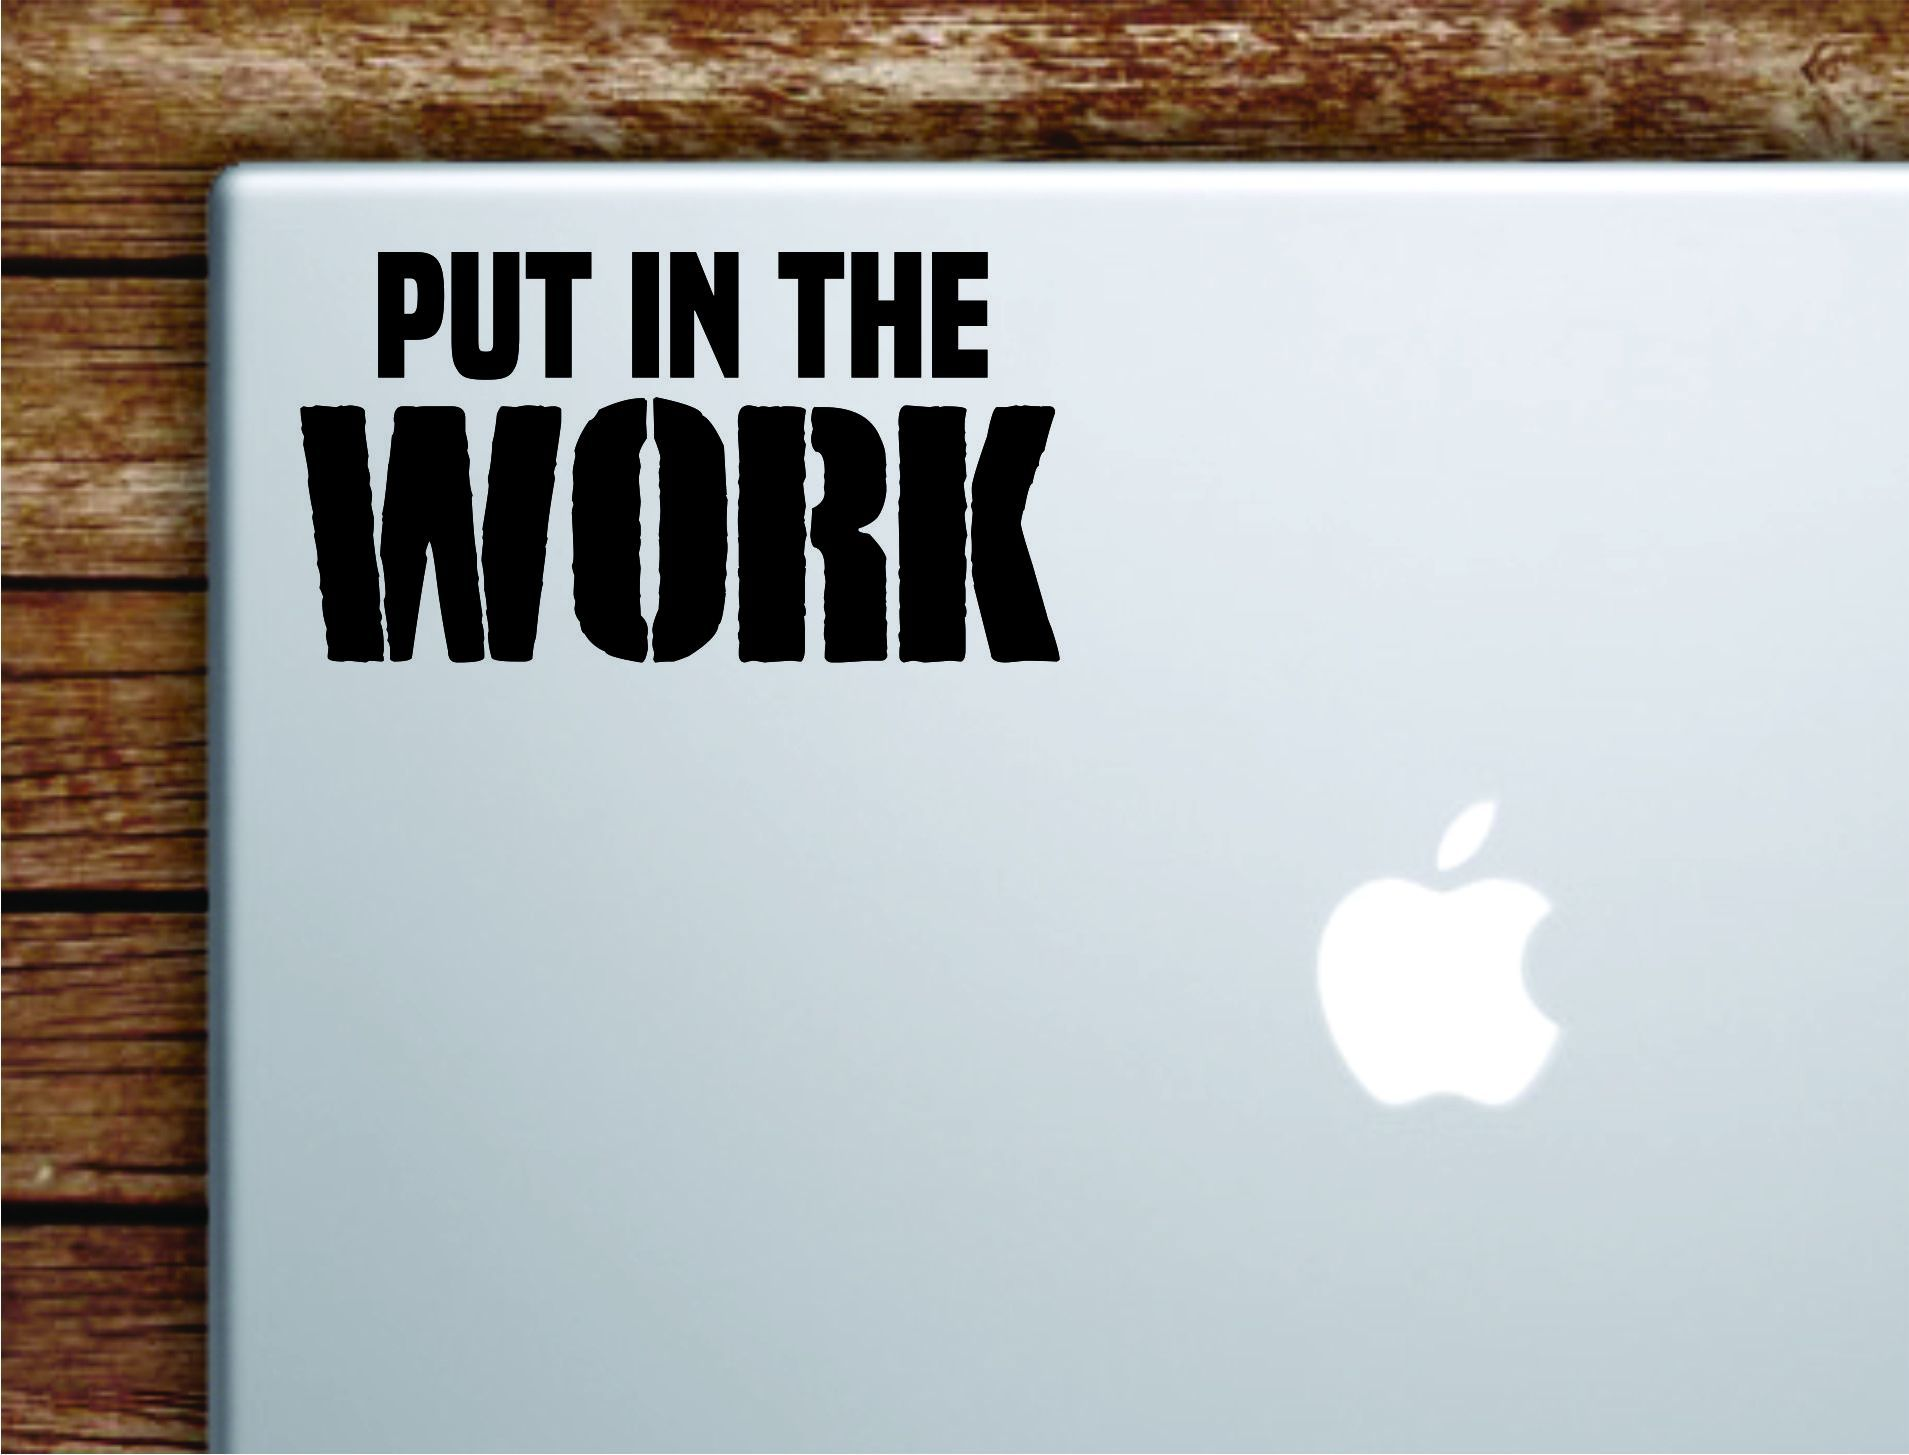 Put In The Work V2 Laptop Wall Decal Sticker Vinyl Art Quote Macbook Apple Decor Car Window Truck Kids Baby Teen Inspirational Gym Fitness Lift Sports - yellow